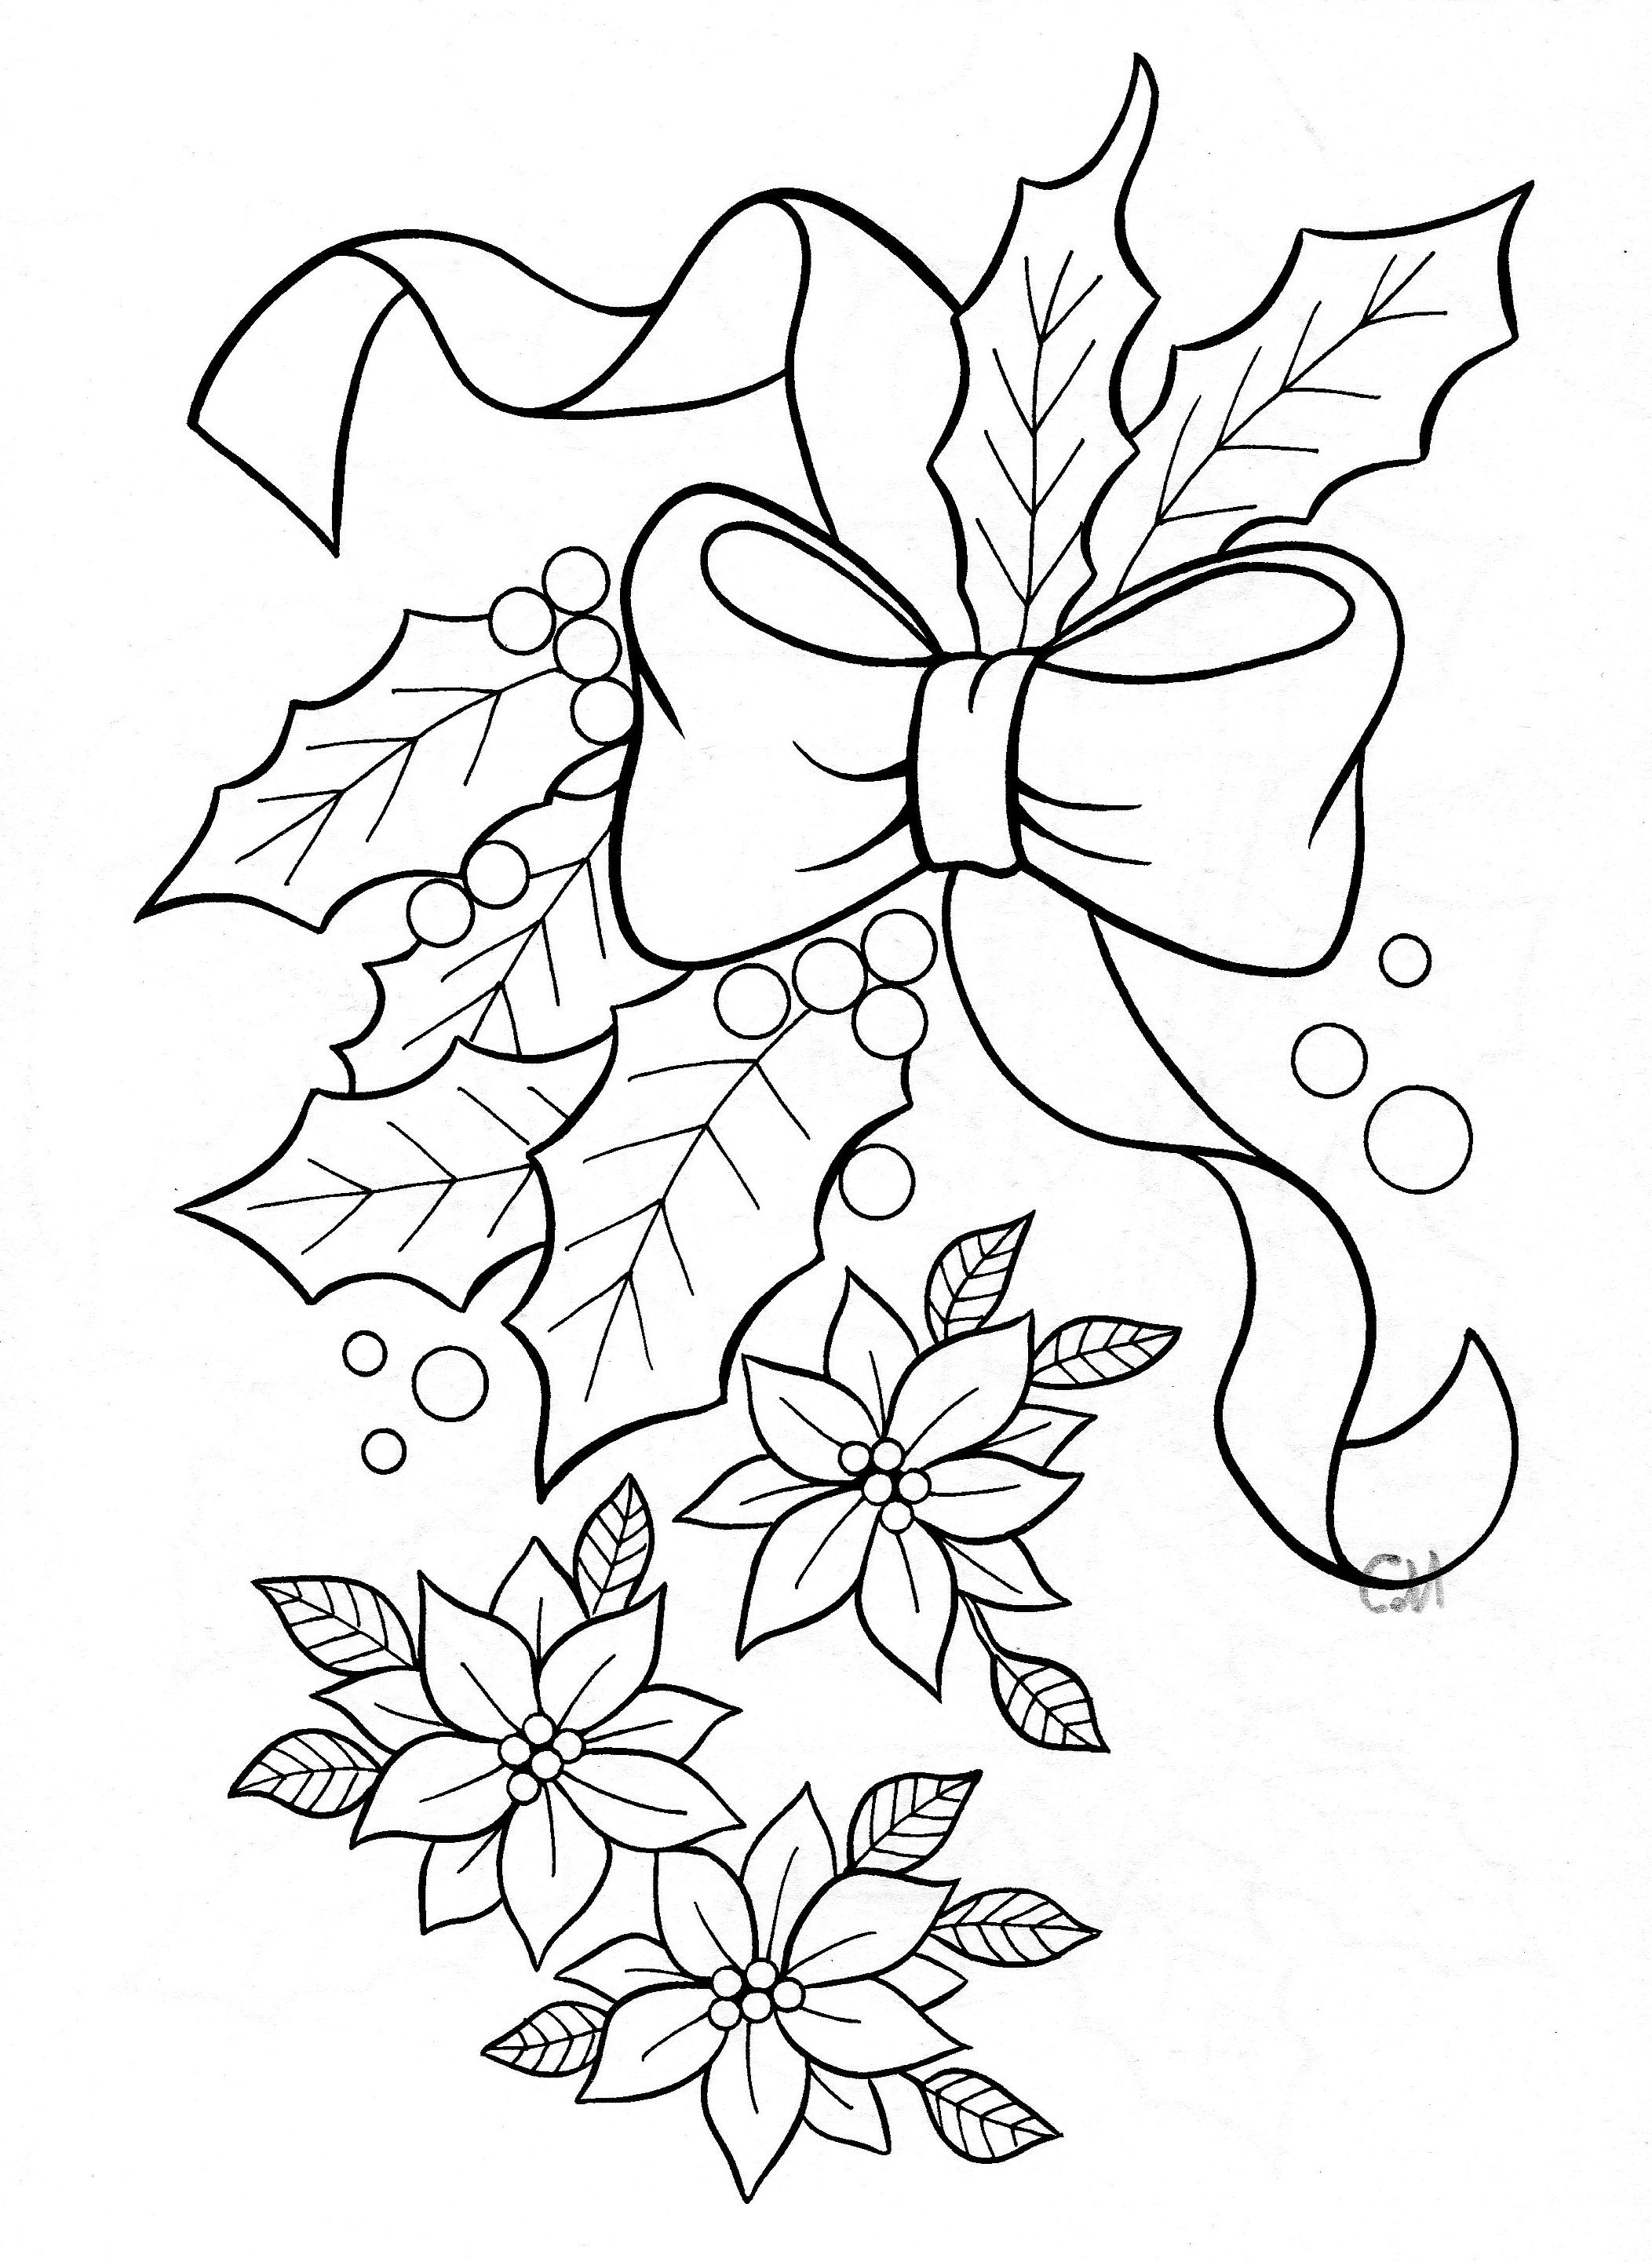 adult coloring and doodle art & drawings Clip Art